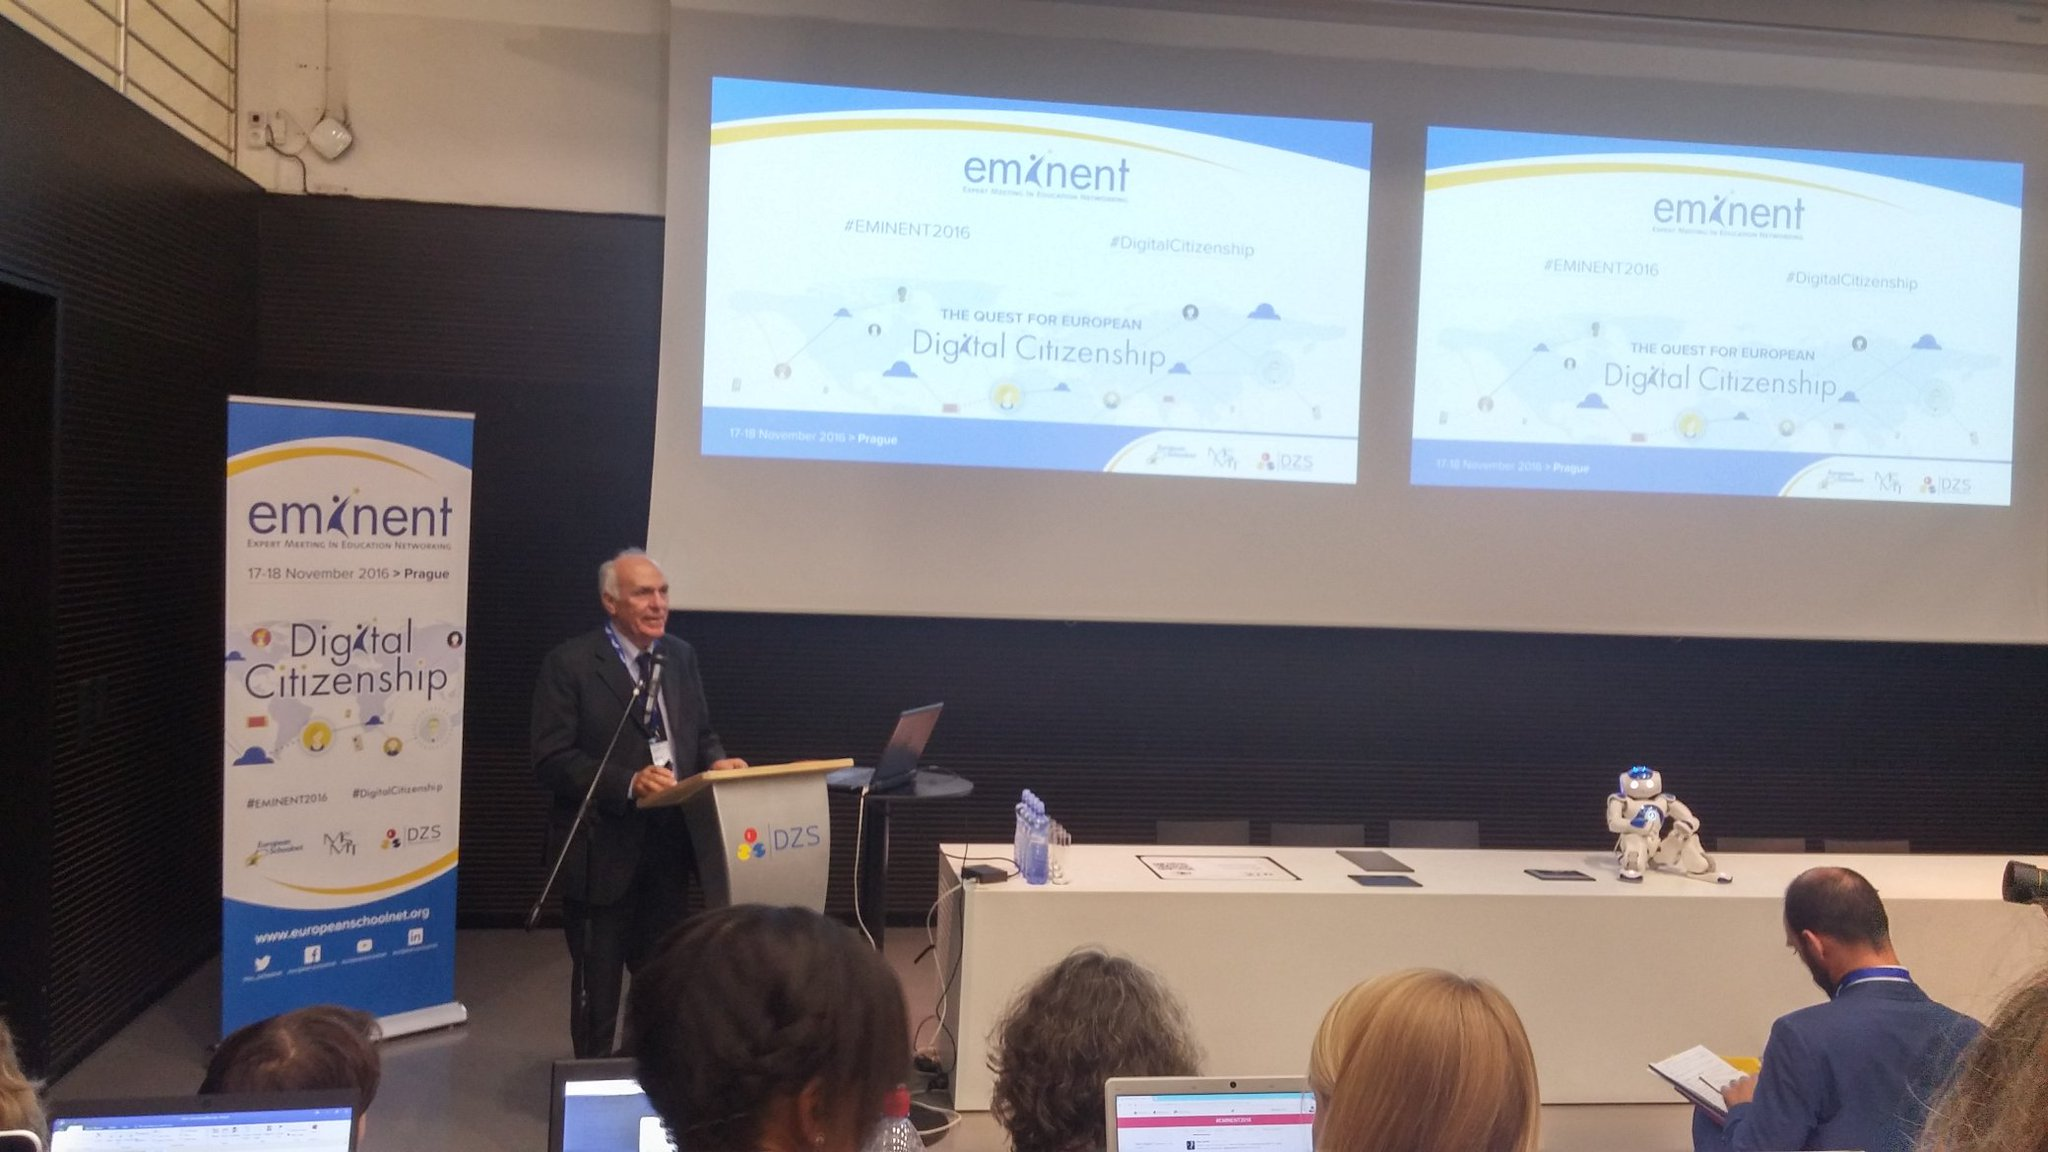 Giovanni Biondi @eu_schoolnet chairman opening speech on the importance of #DigitalCitizenship at #EMINENT2016 Romeo the robot on his left https://t.co/FH0I1F4qHc